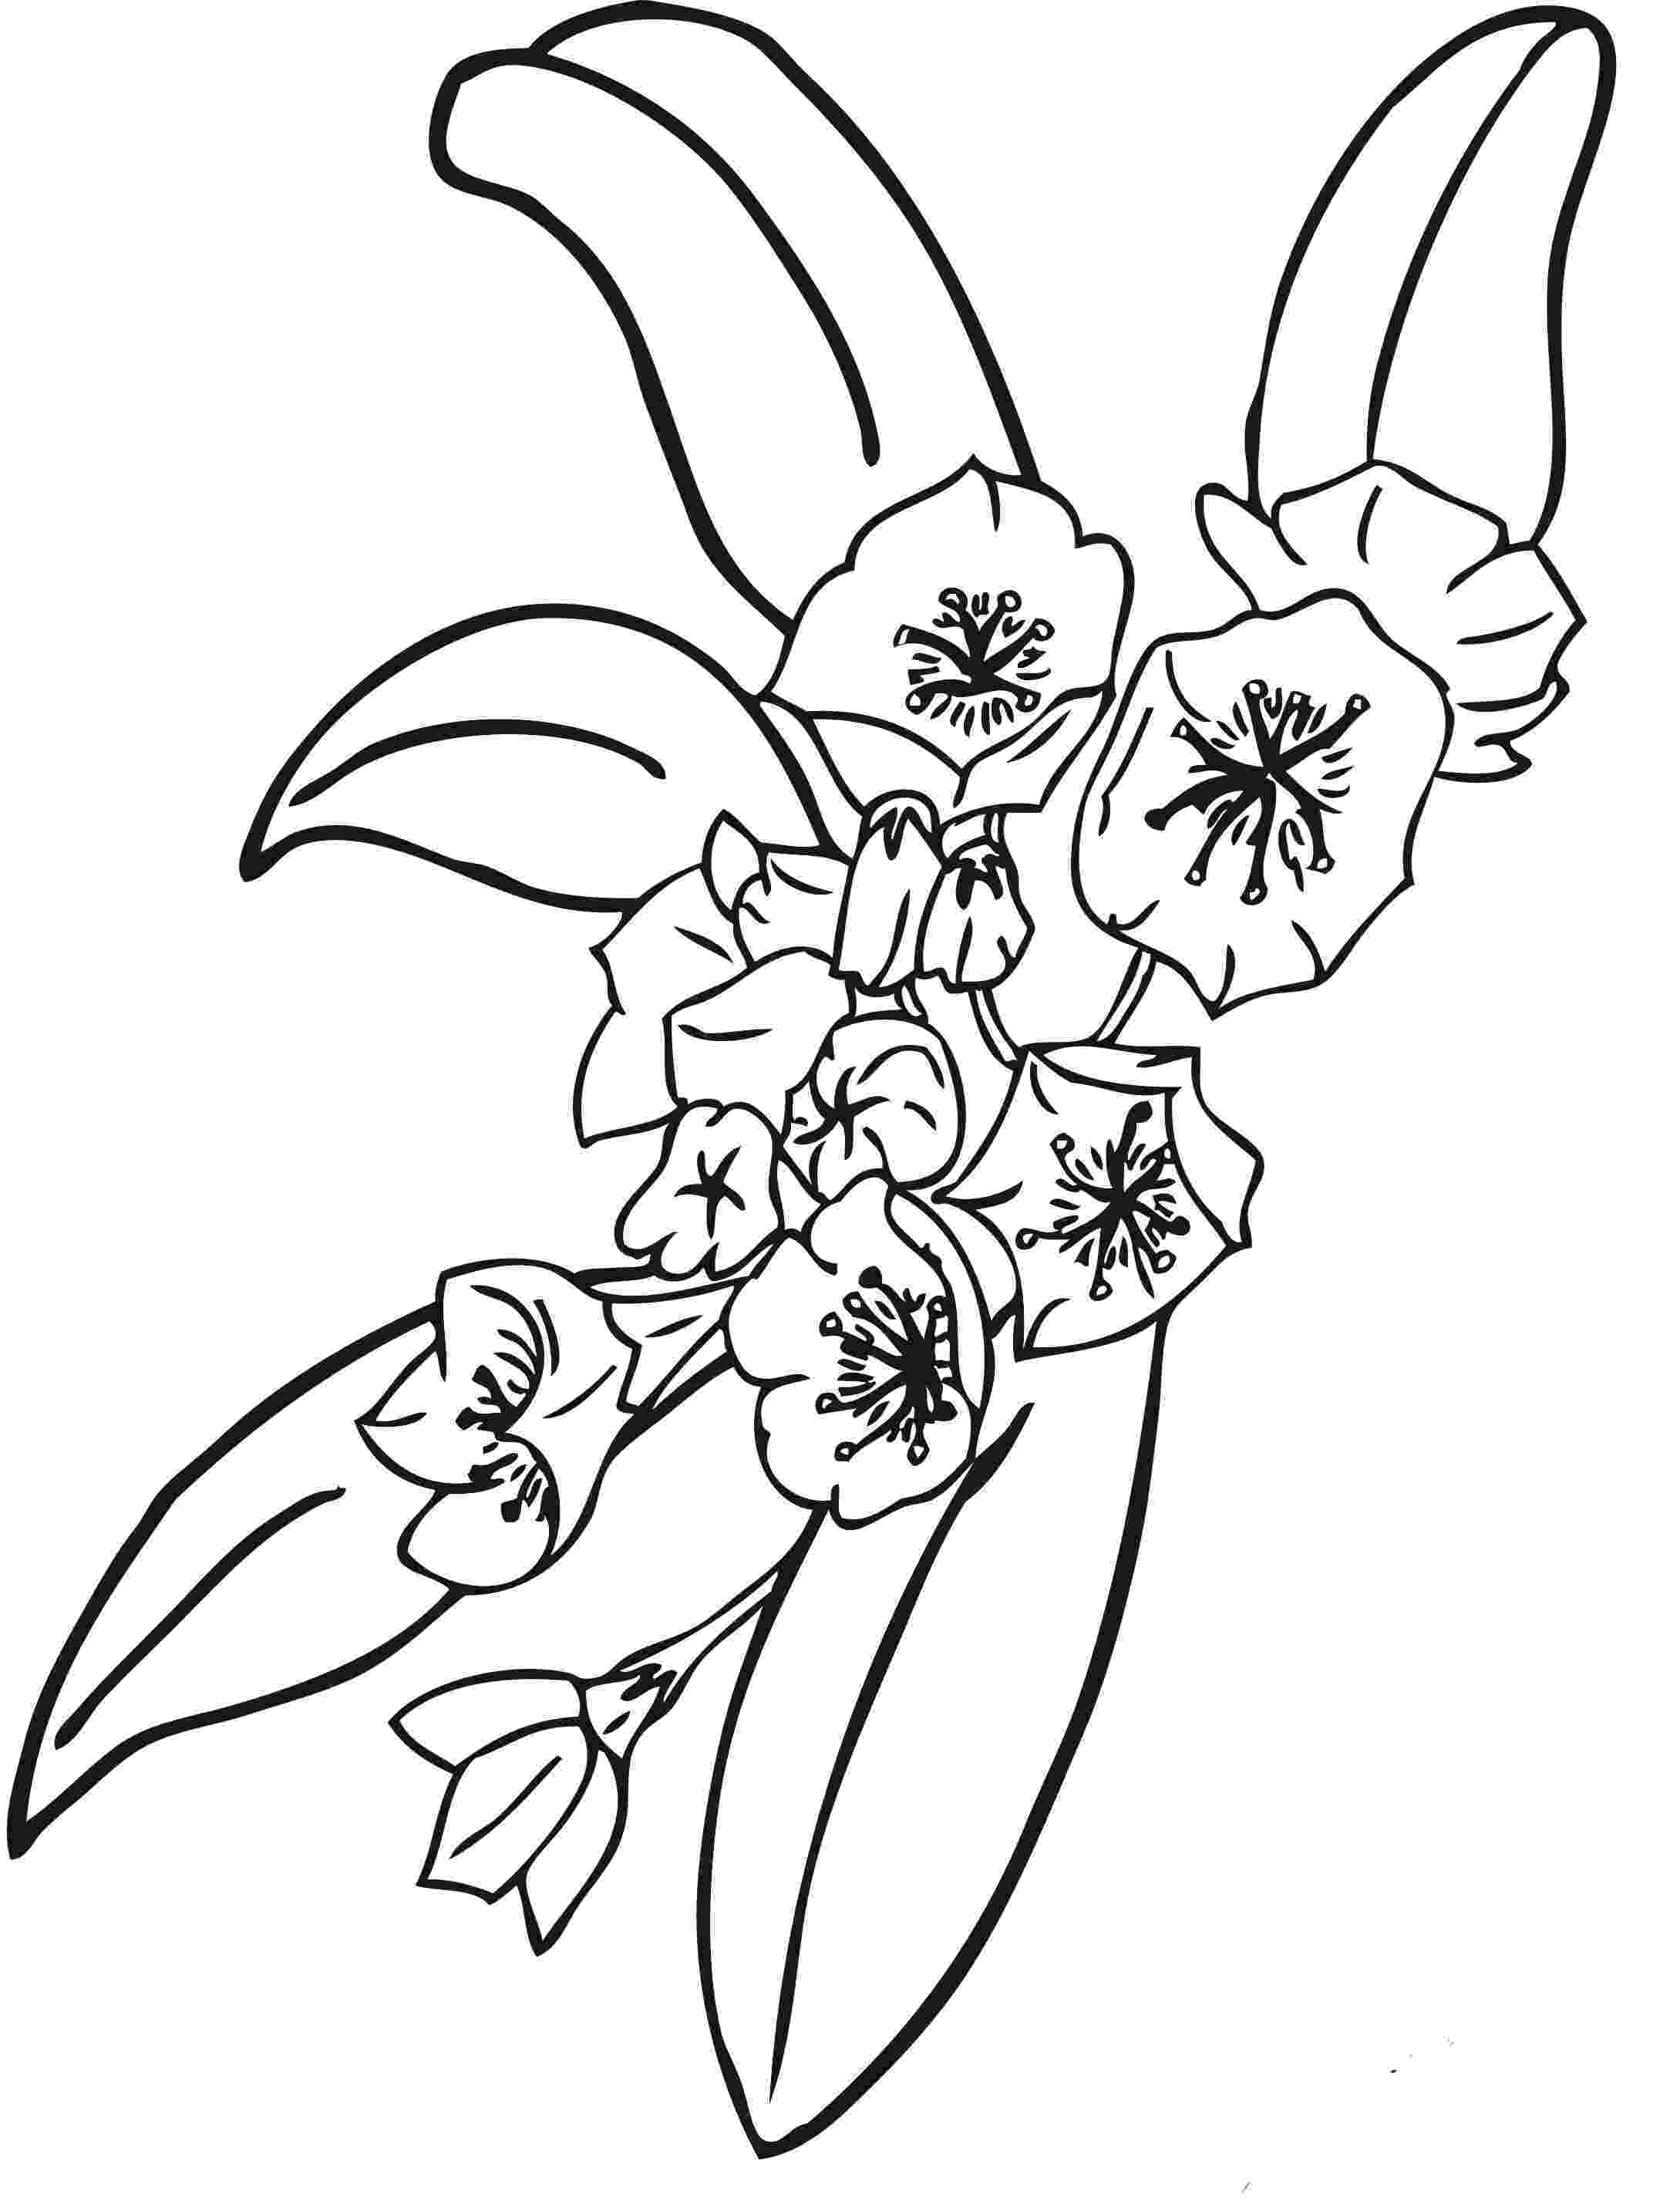 pictures of flowers coloring pages free printable flower coloring pages for kids cool2bkids of flowers pictures coloring pages